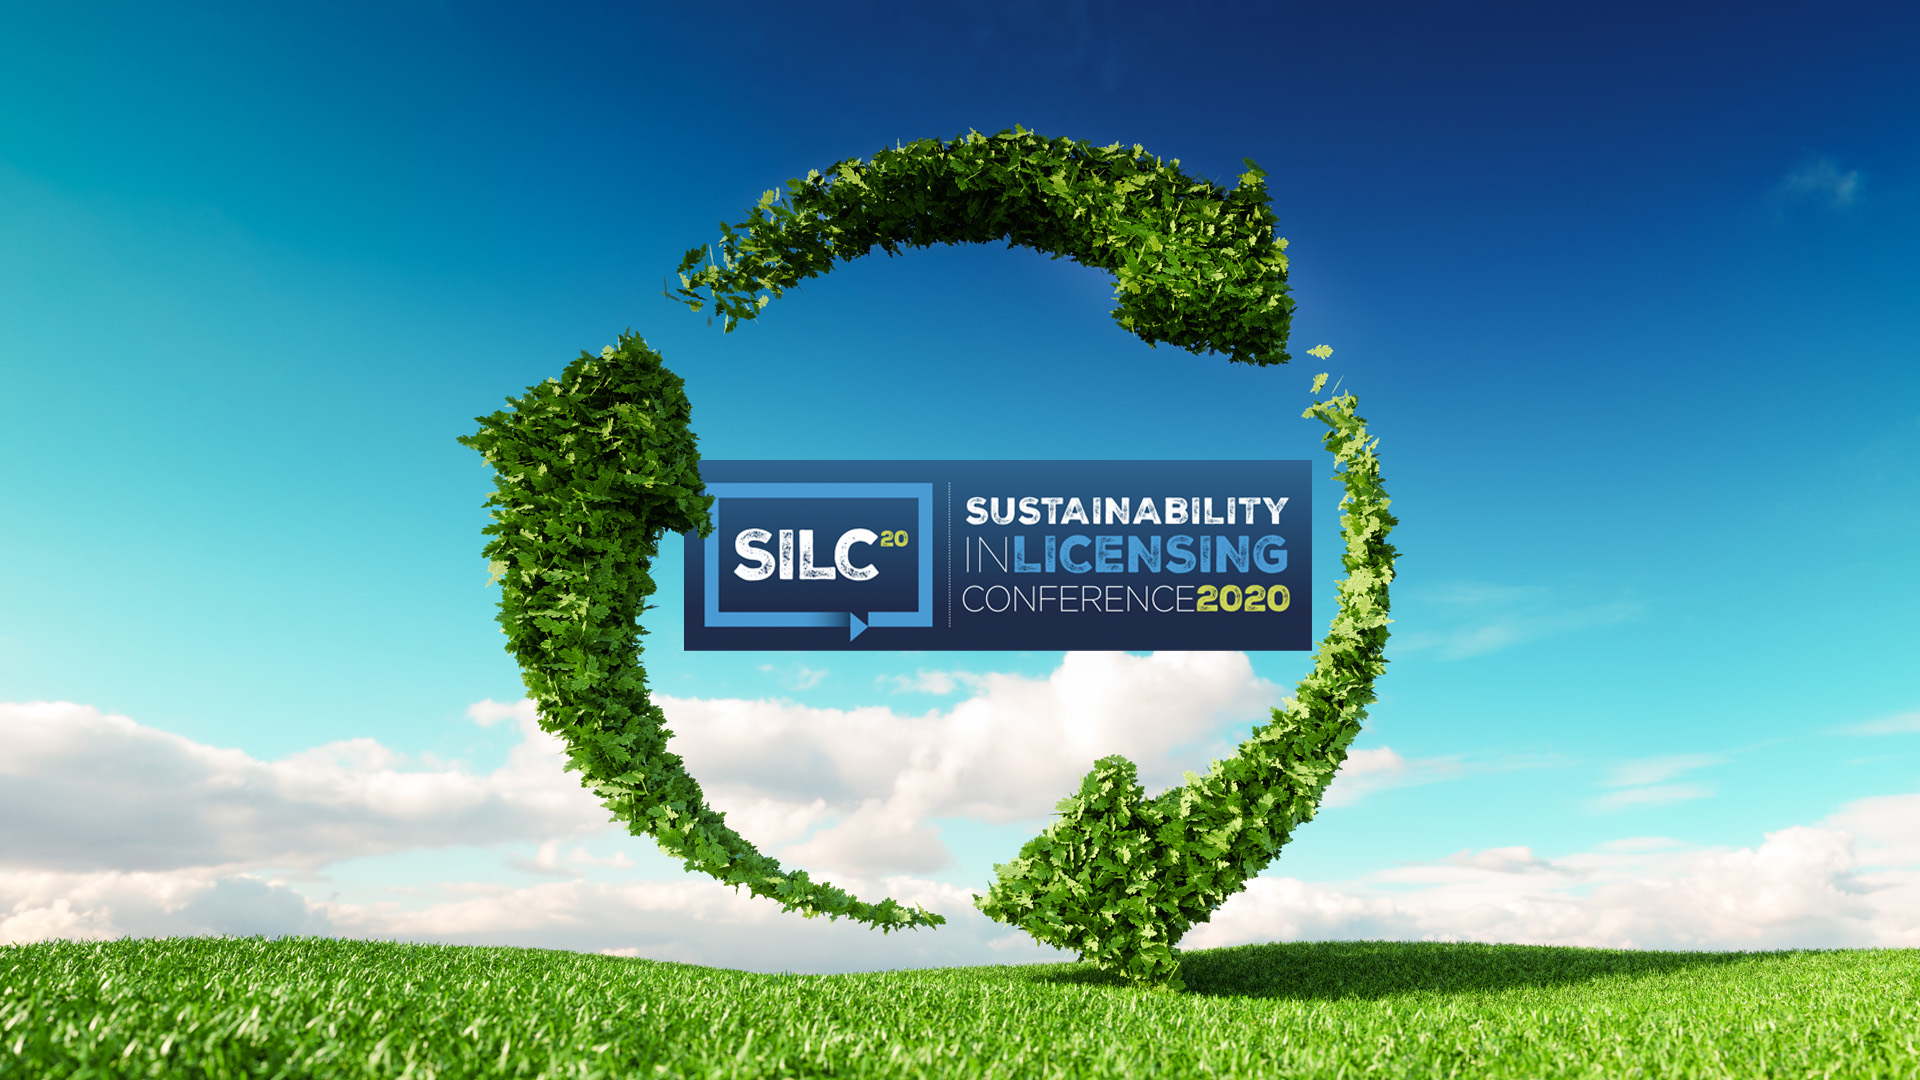 Above: SILC will look at the importance of the circular economy among many other aspects of sustainability.